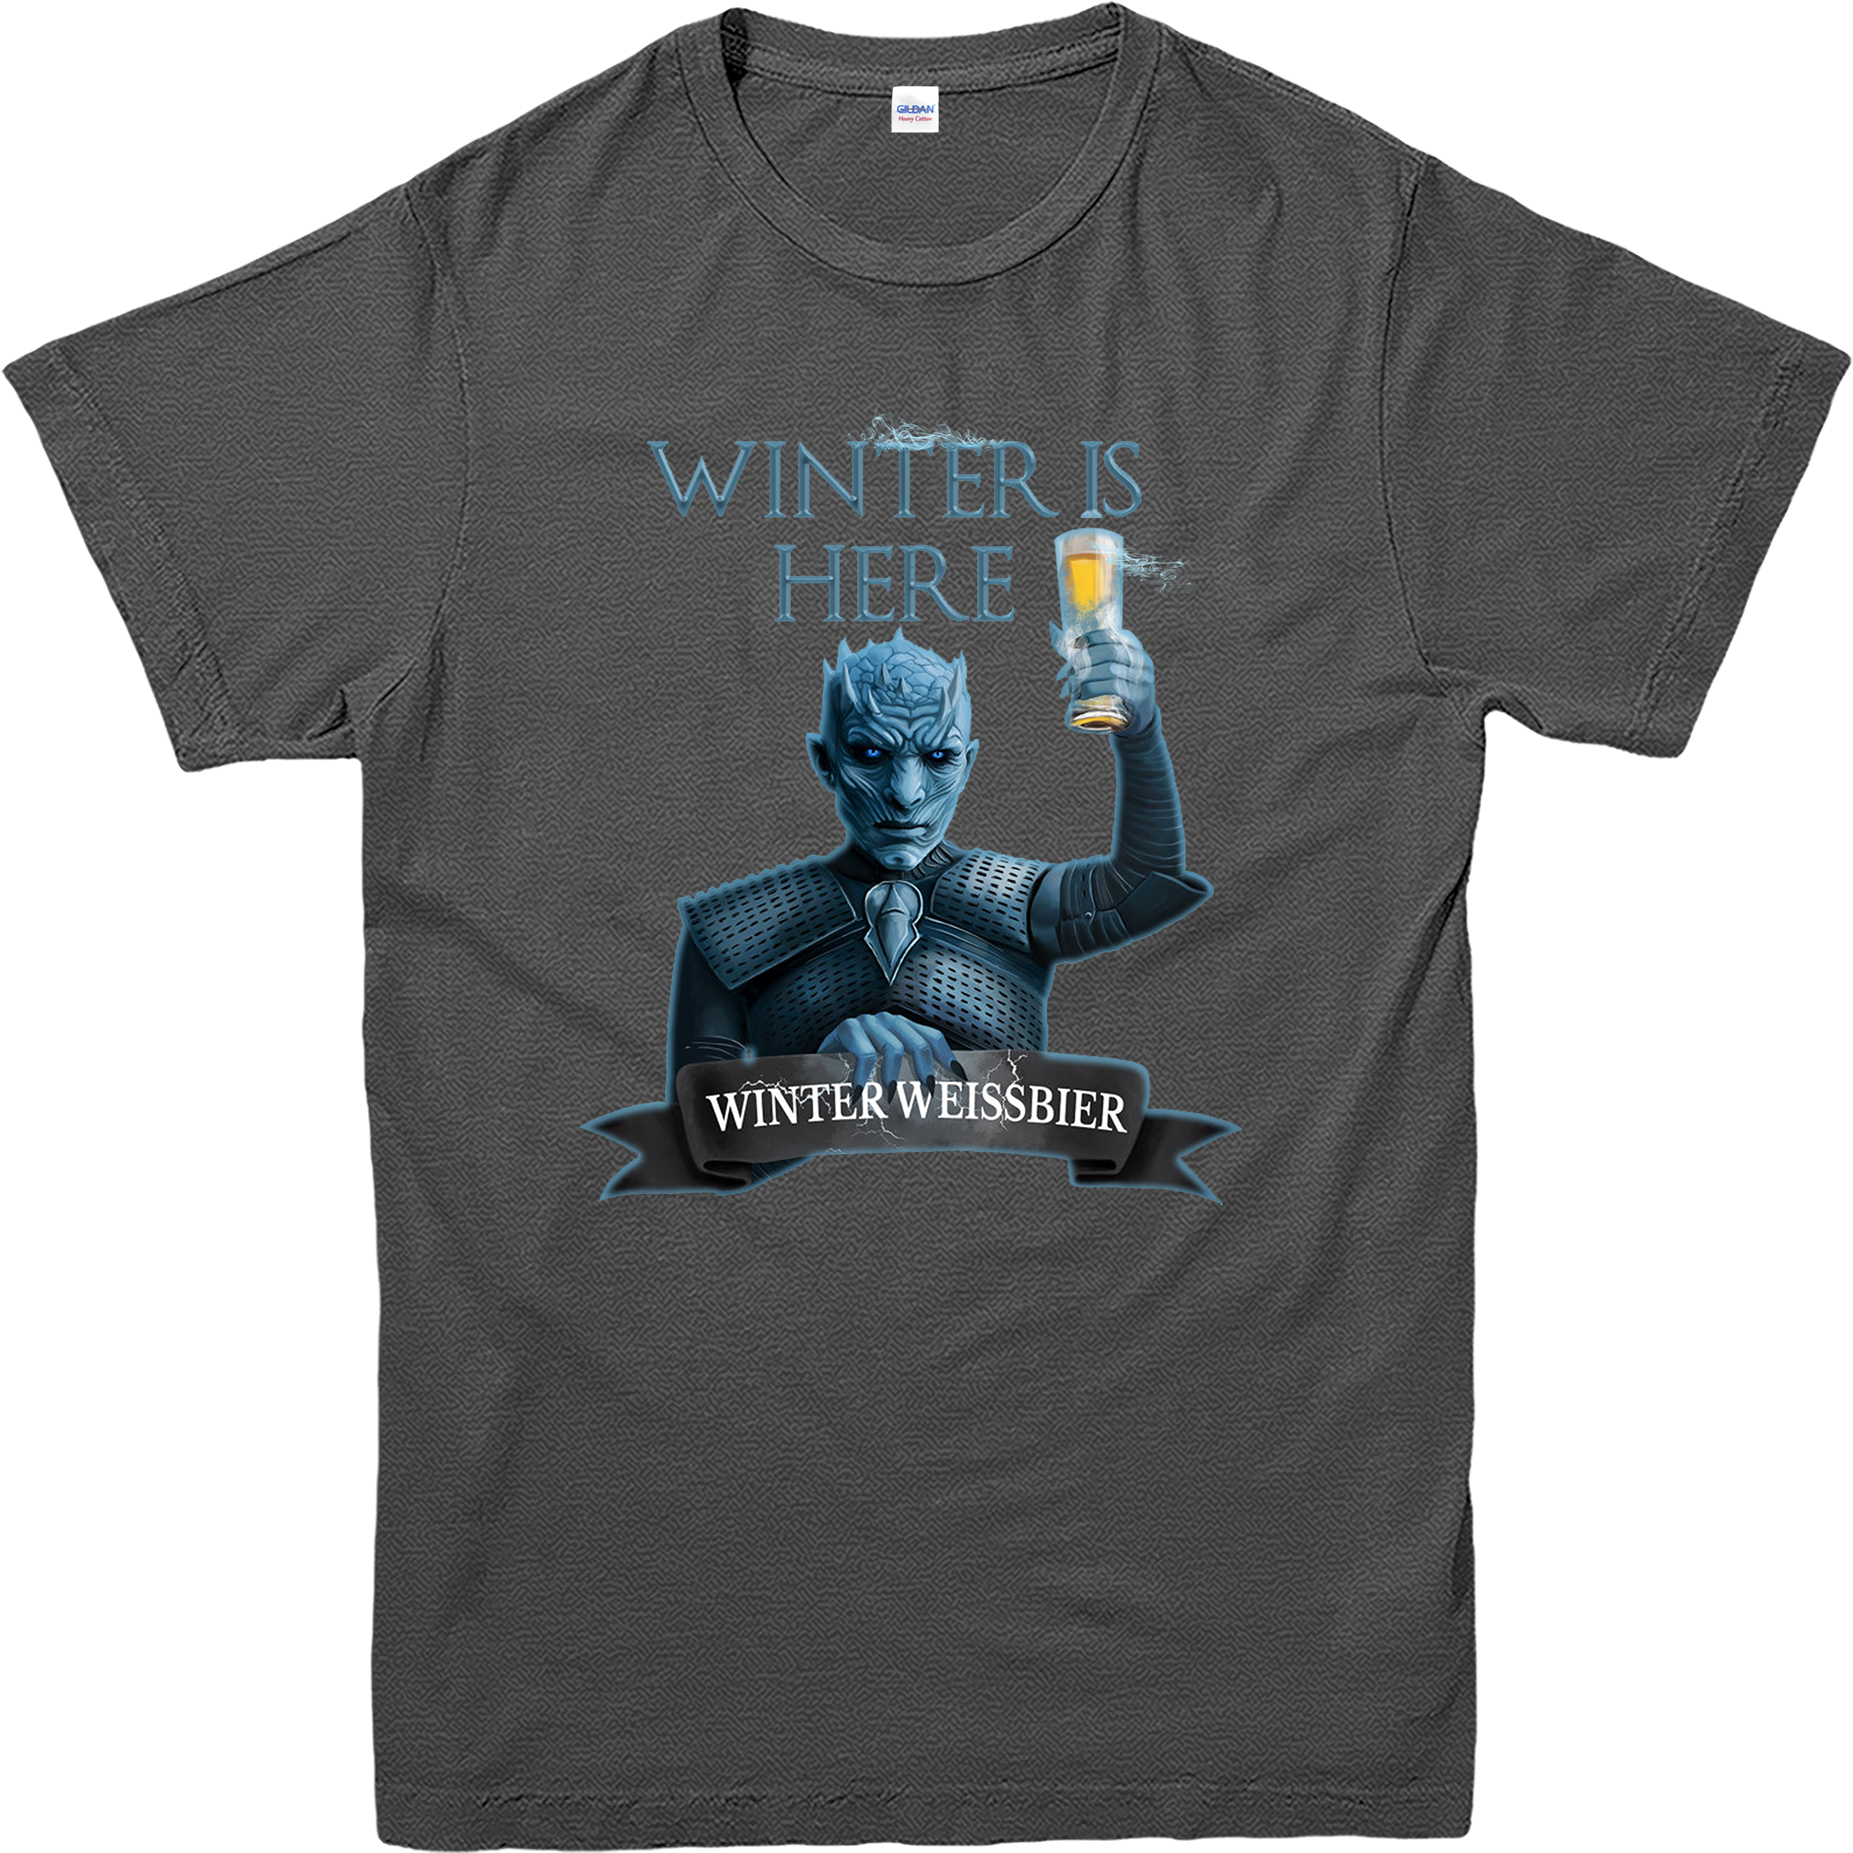 Game of thrones t shirt winter is here beer spoof t shirt for T shirt design game